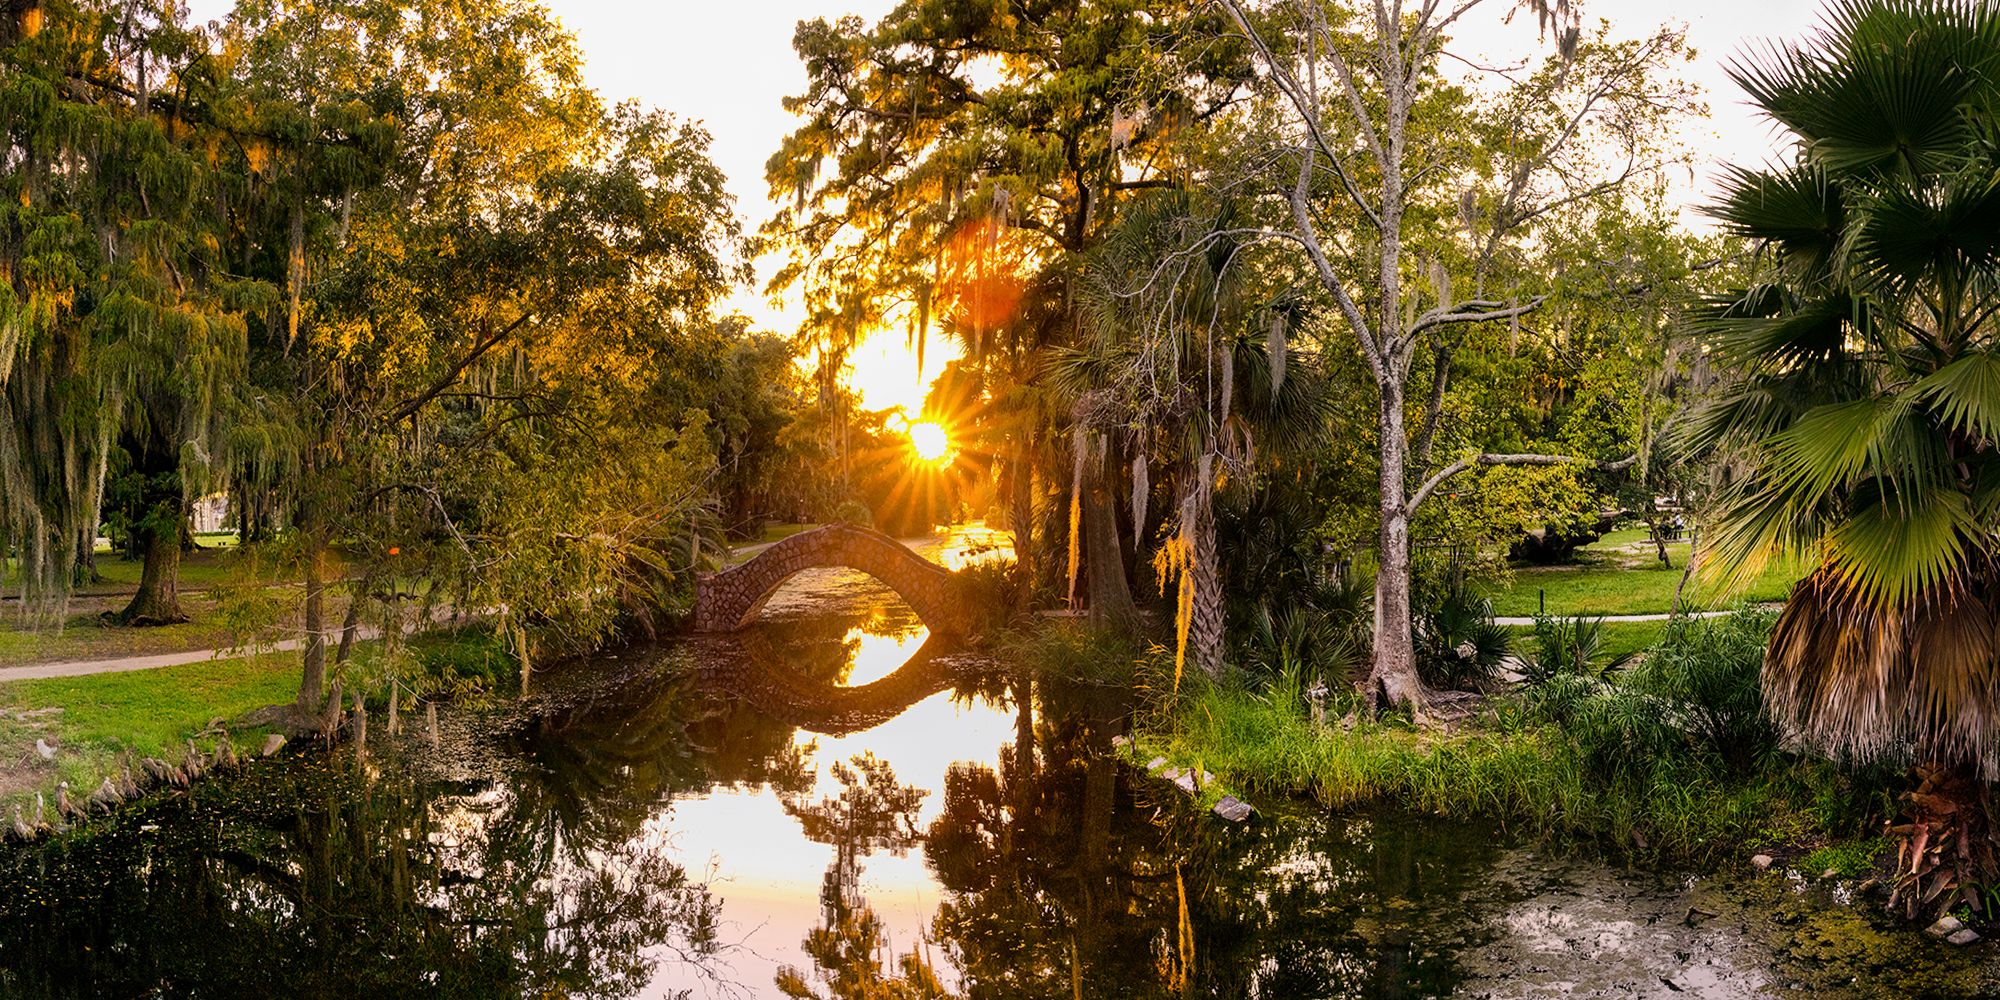 30 Best Parks in the US - Best Parks in Every State